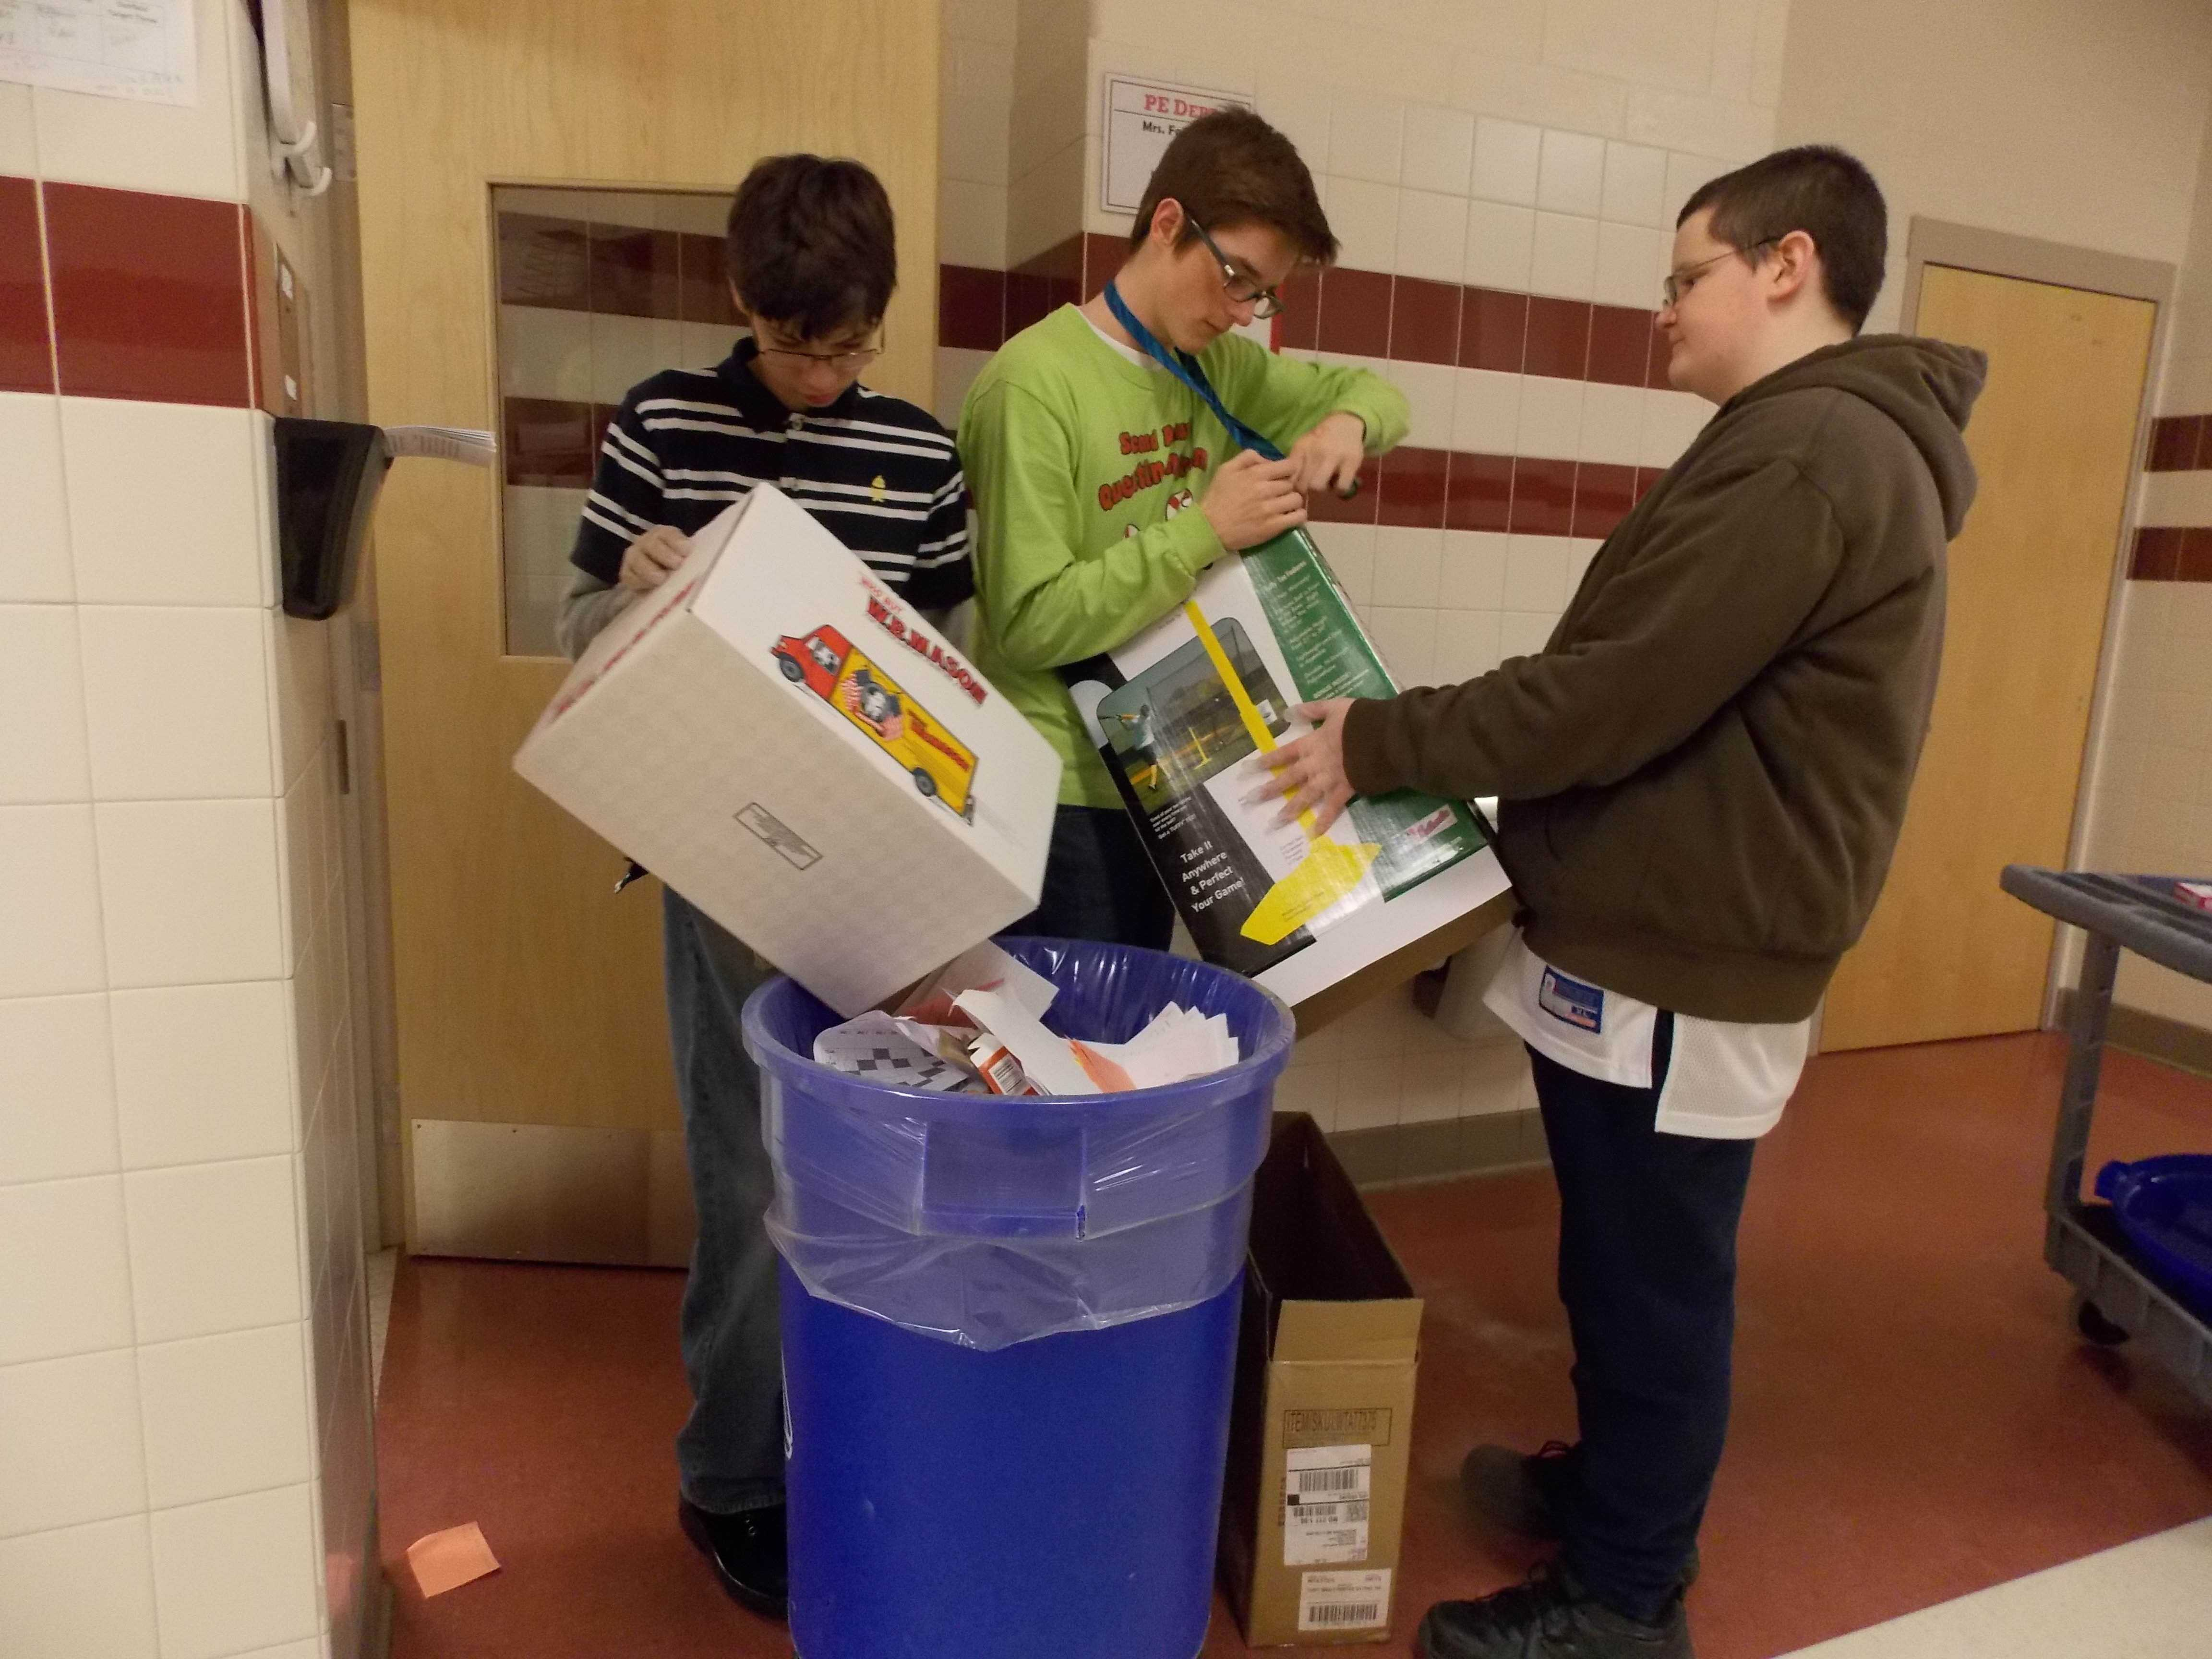 Owen Gamba, Jakob Connelly, and Mike Wilkerson collect recycling.